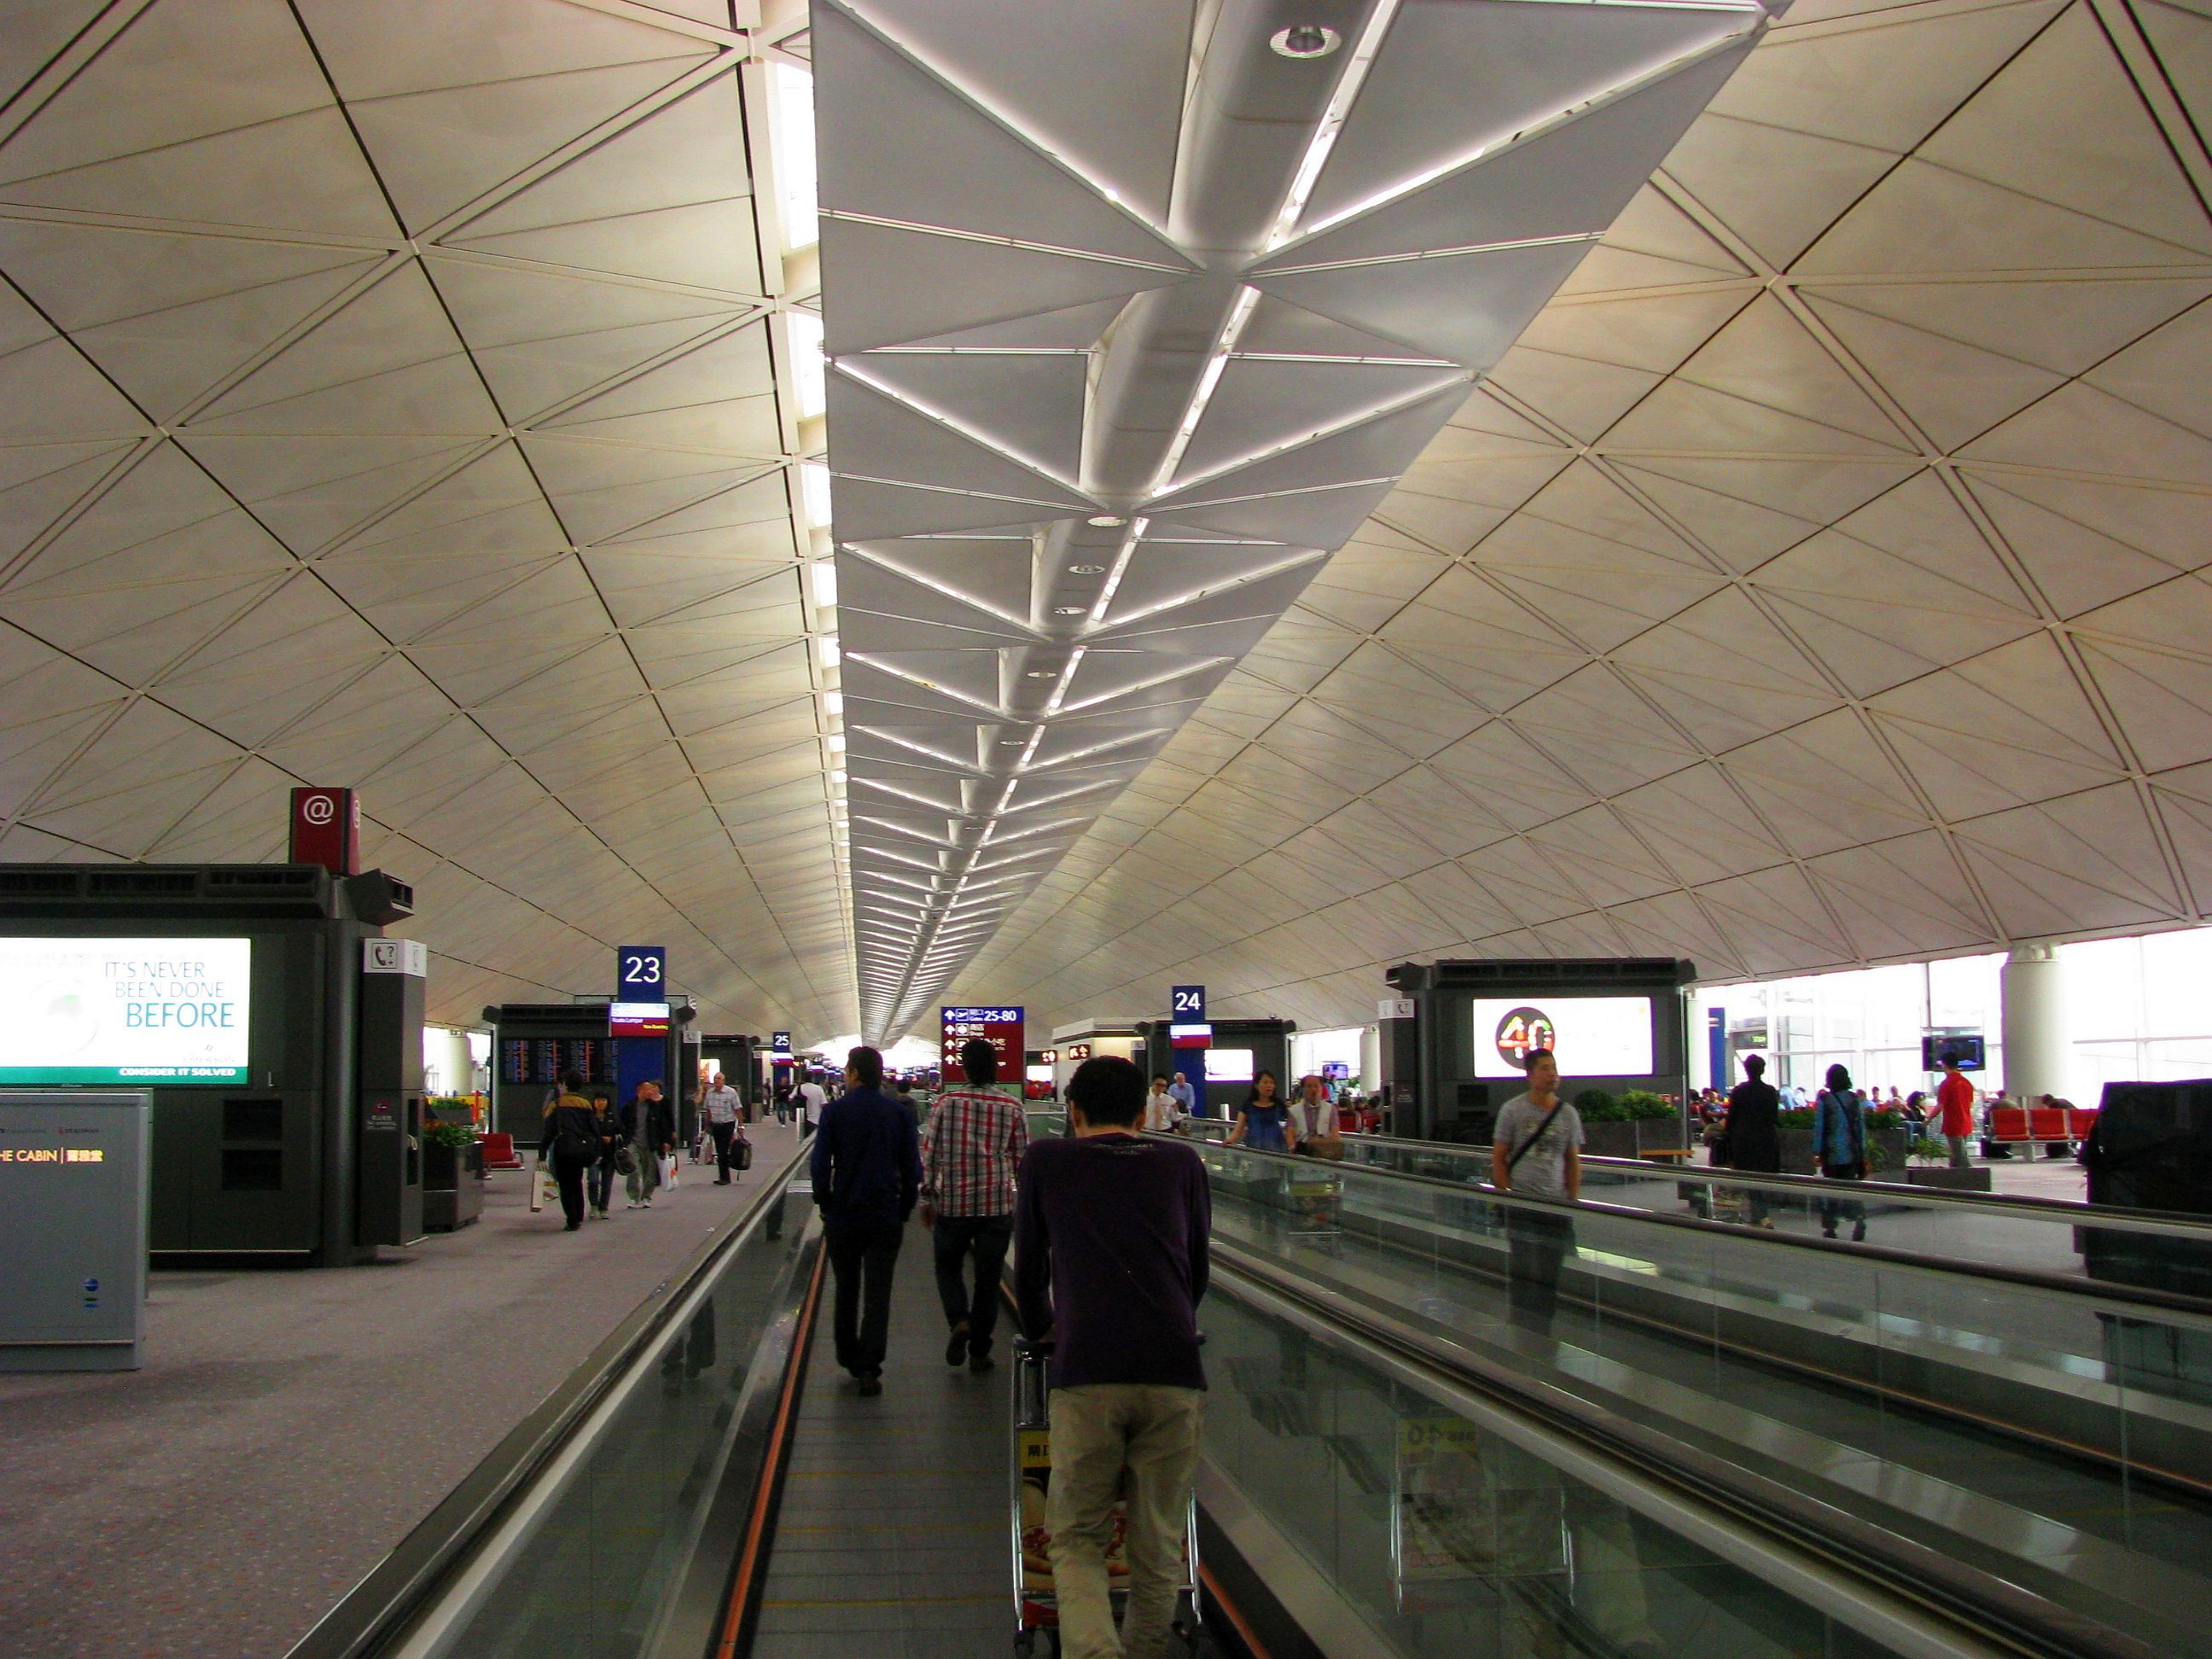 hong kong international airport is the There are many ways to get into the city from hong kong international airport (locally referred to as hkia) the airport express (ae) service is a regularly recommended approach for visitors.